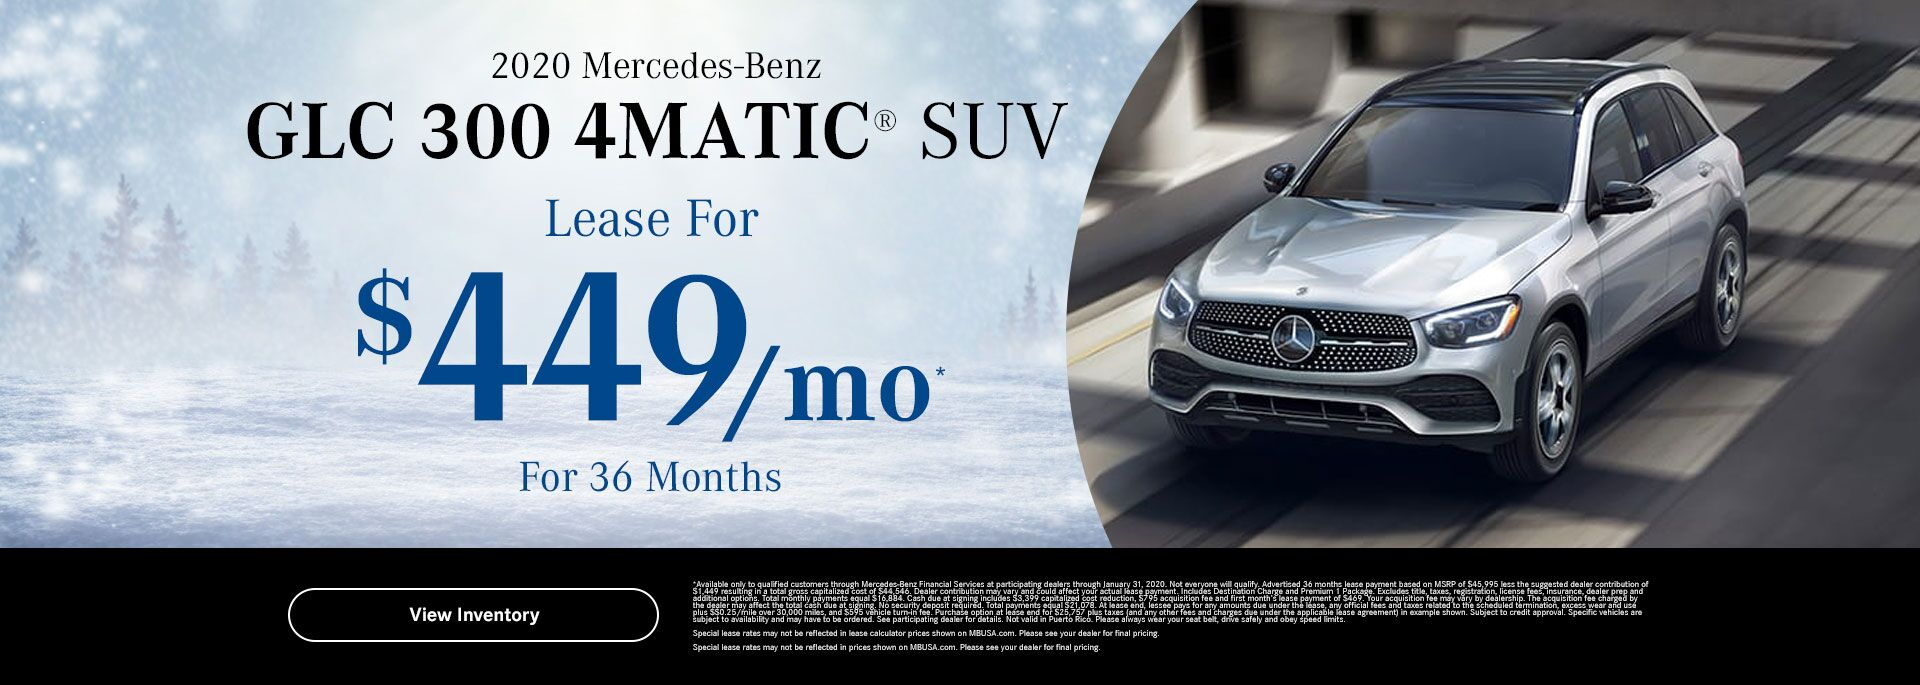 2020 GLC 300 4MATIC lease special